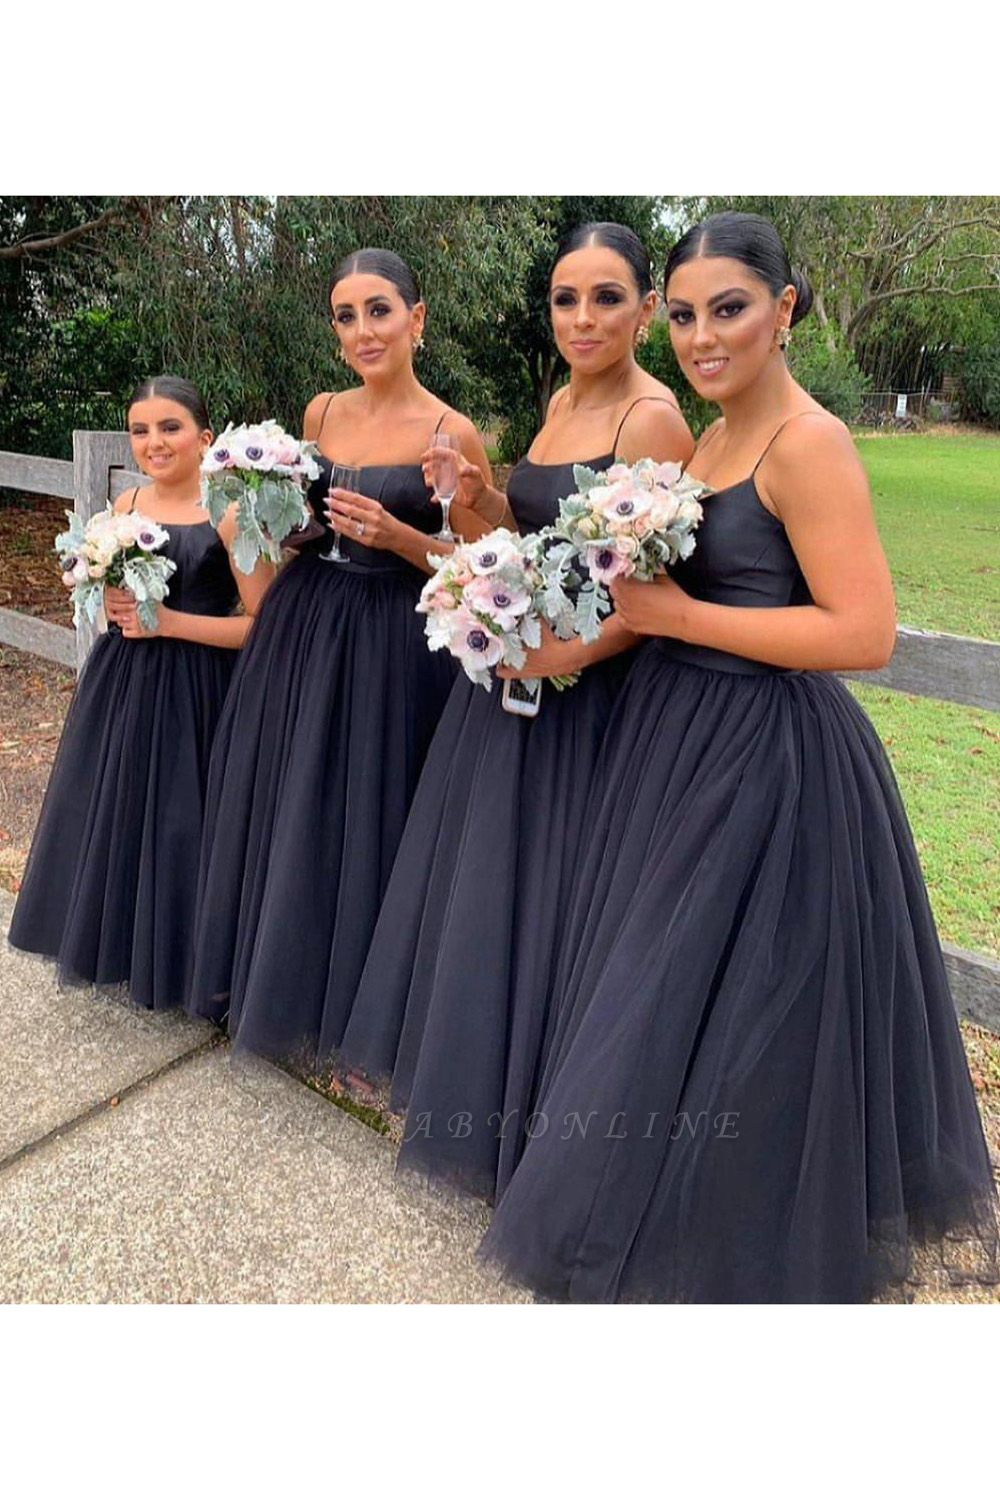 Spaghetti Straps Floor Length Sexy Tulle Bridesmaid Dresses   Cheap Wedding Guest Dresses